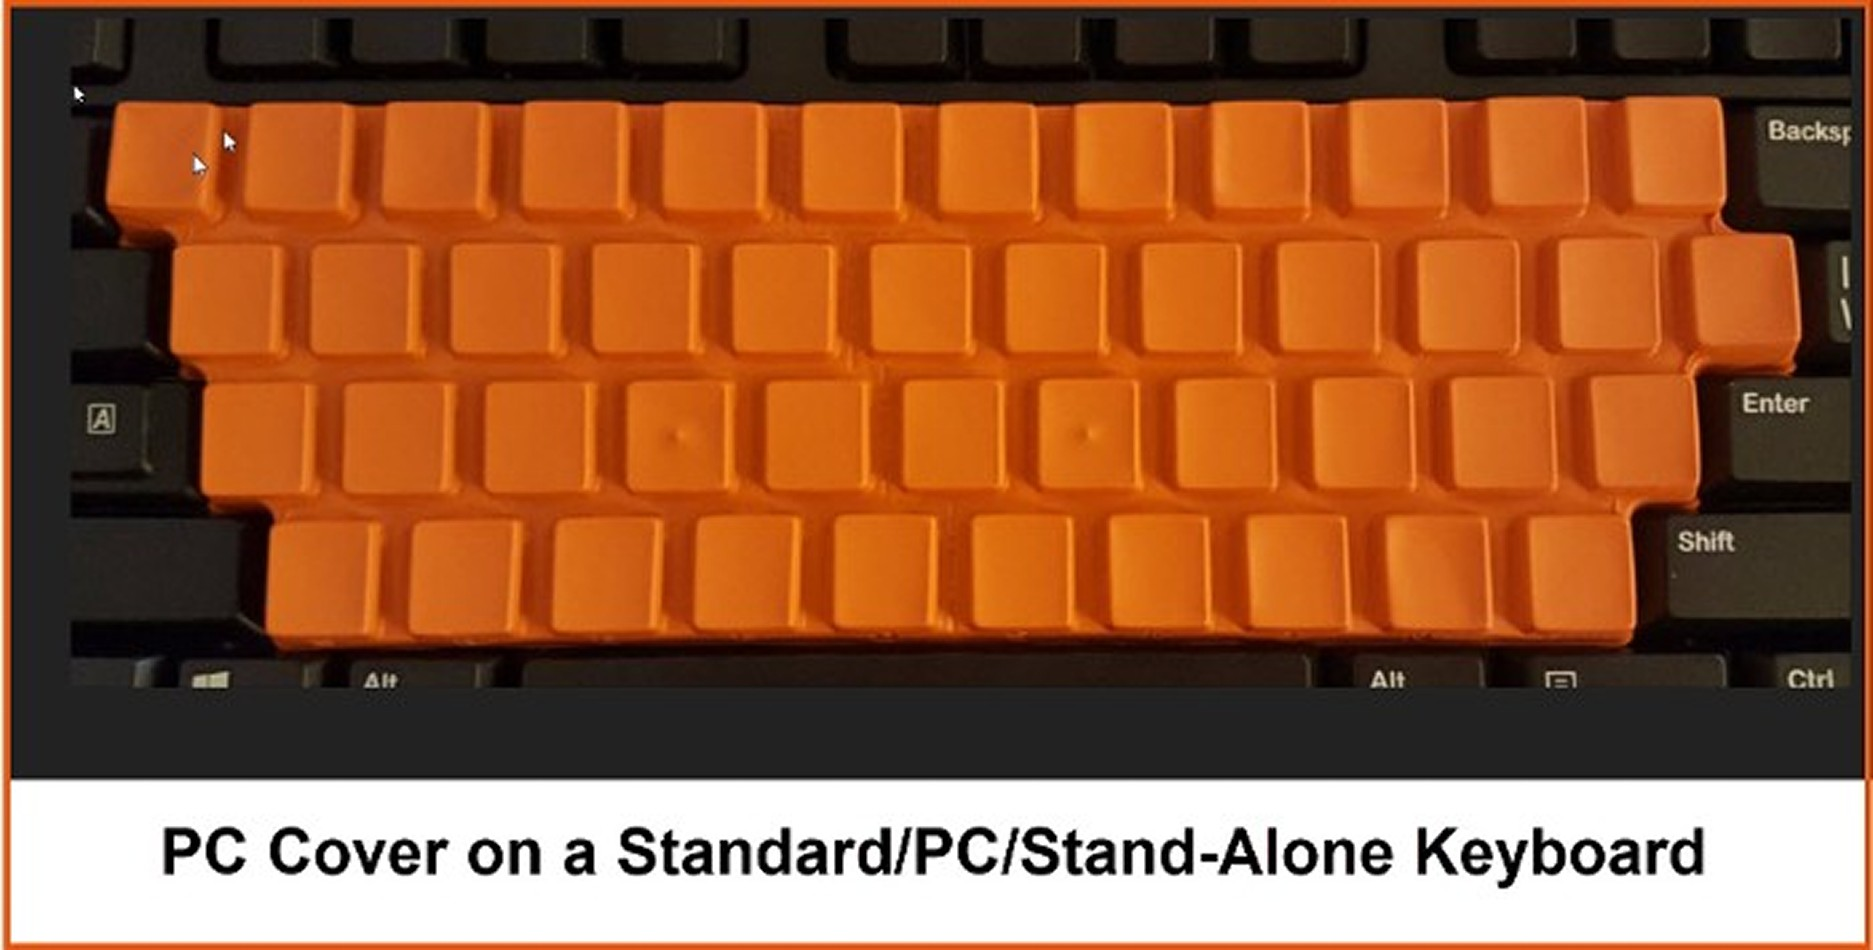 PC Cover on a Standard/PC/Stand-Alone Keyboard